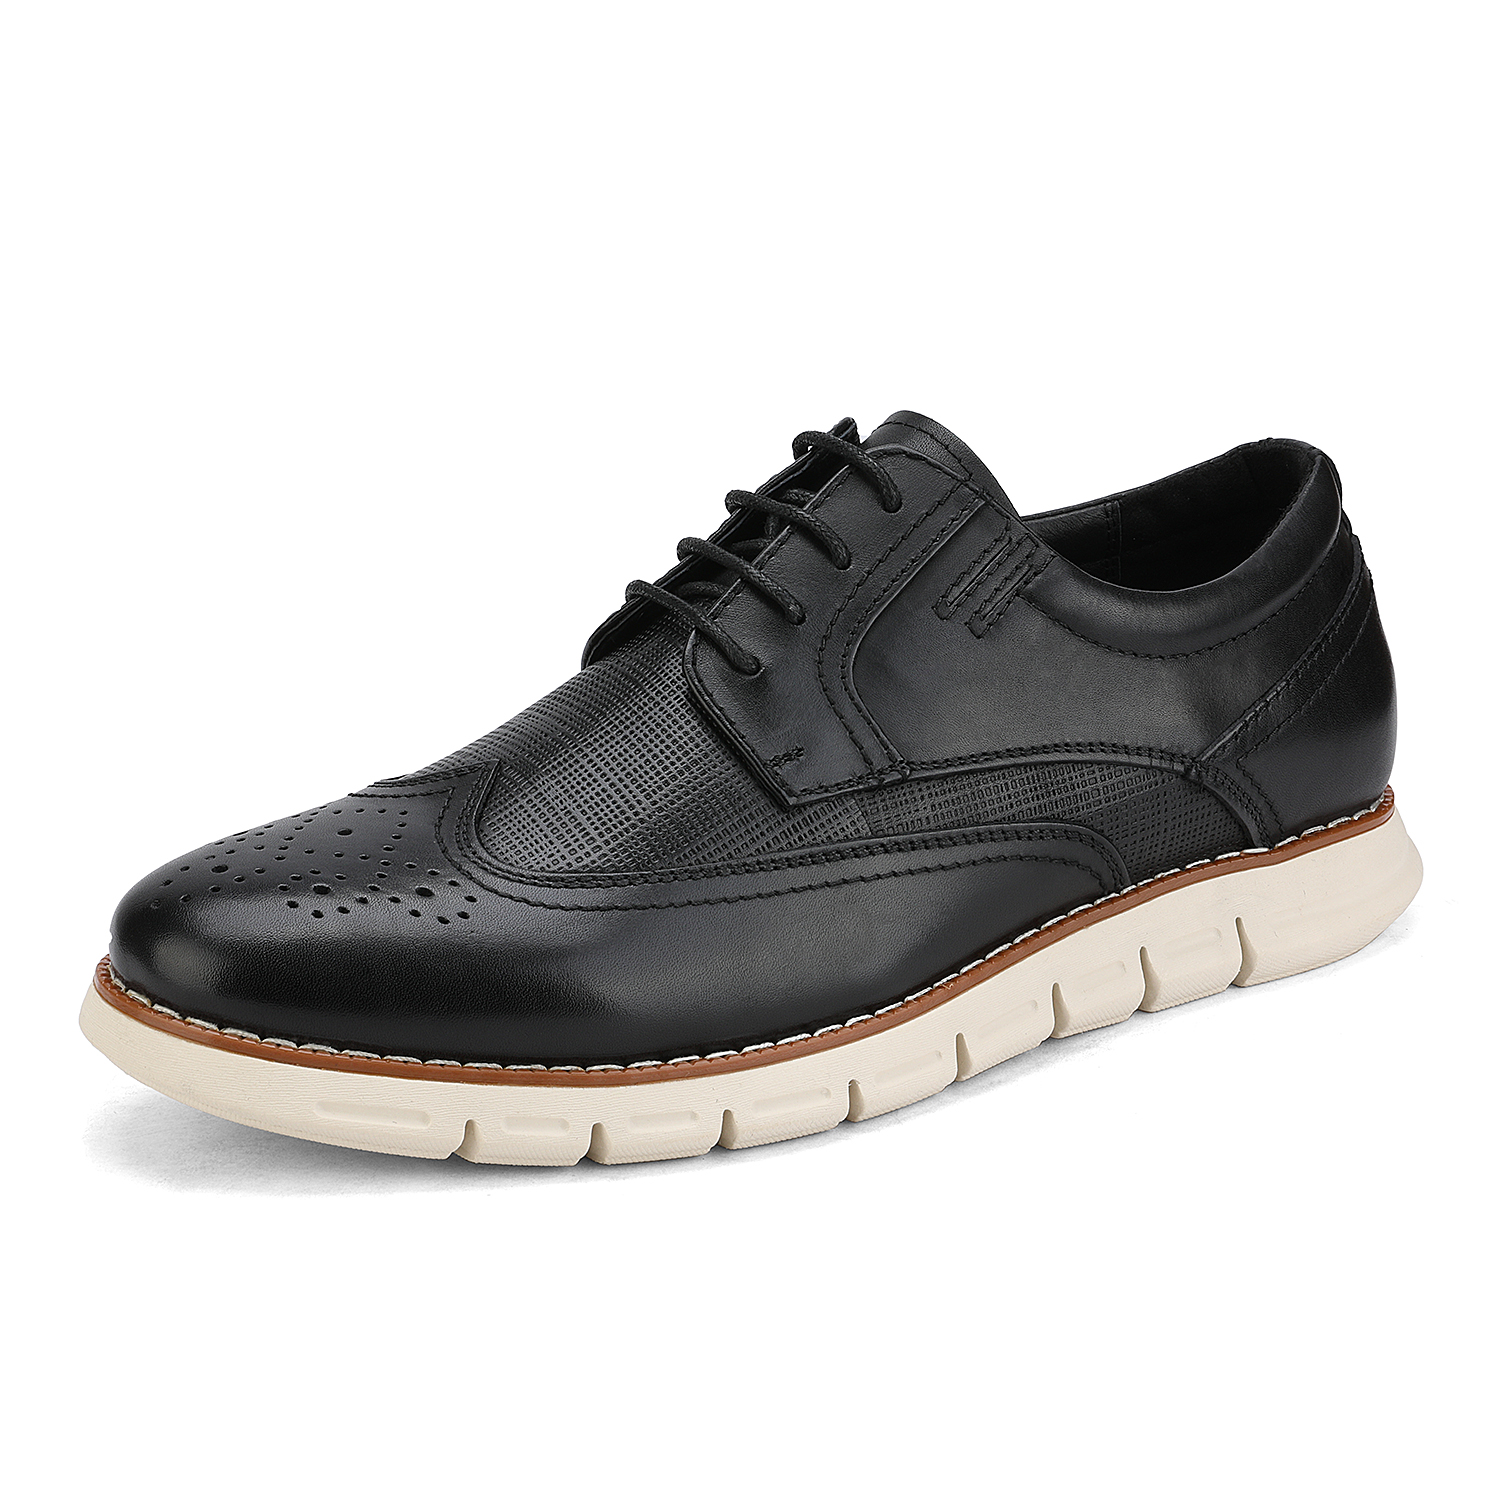 Men-s-Genuine-Leather-Casual-Formal-Sneakers-Lace-up-Business-Oxford-Dress-Shoes thumbnail 12